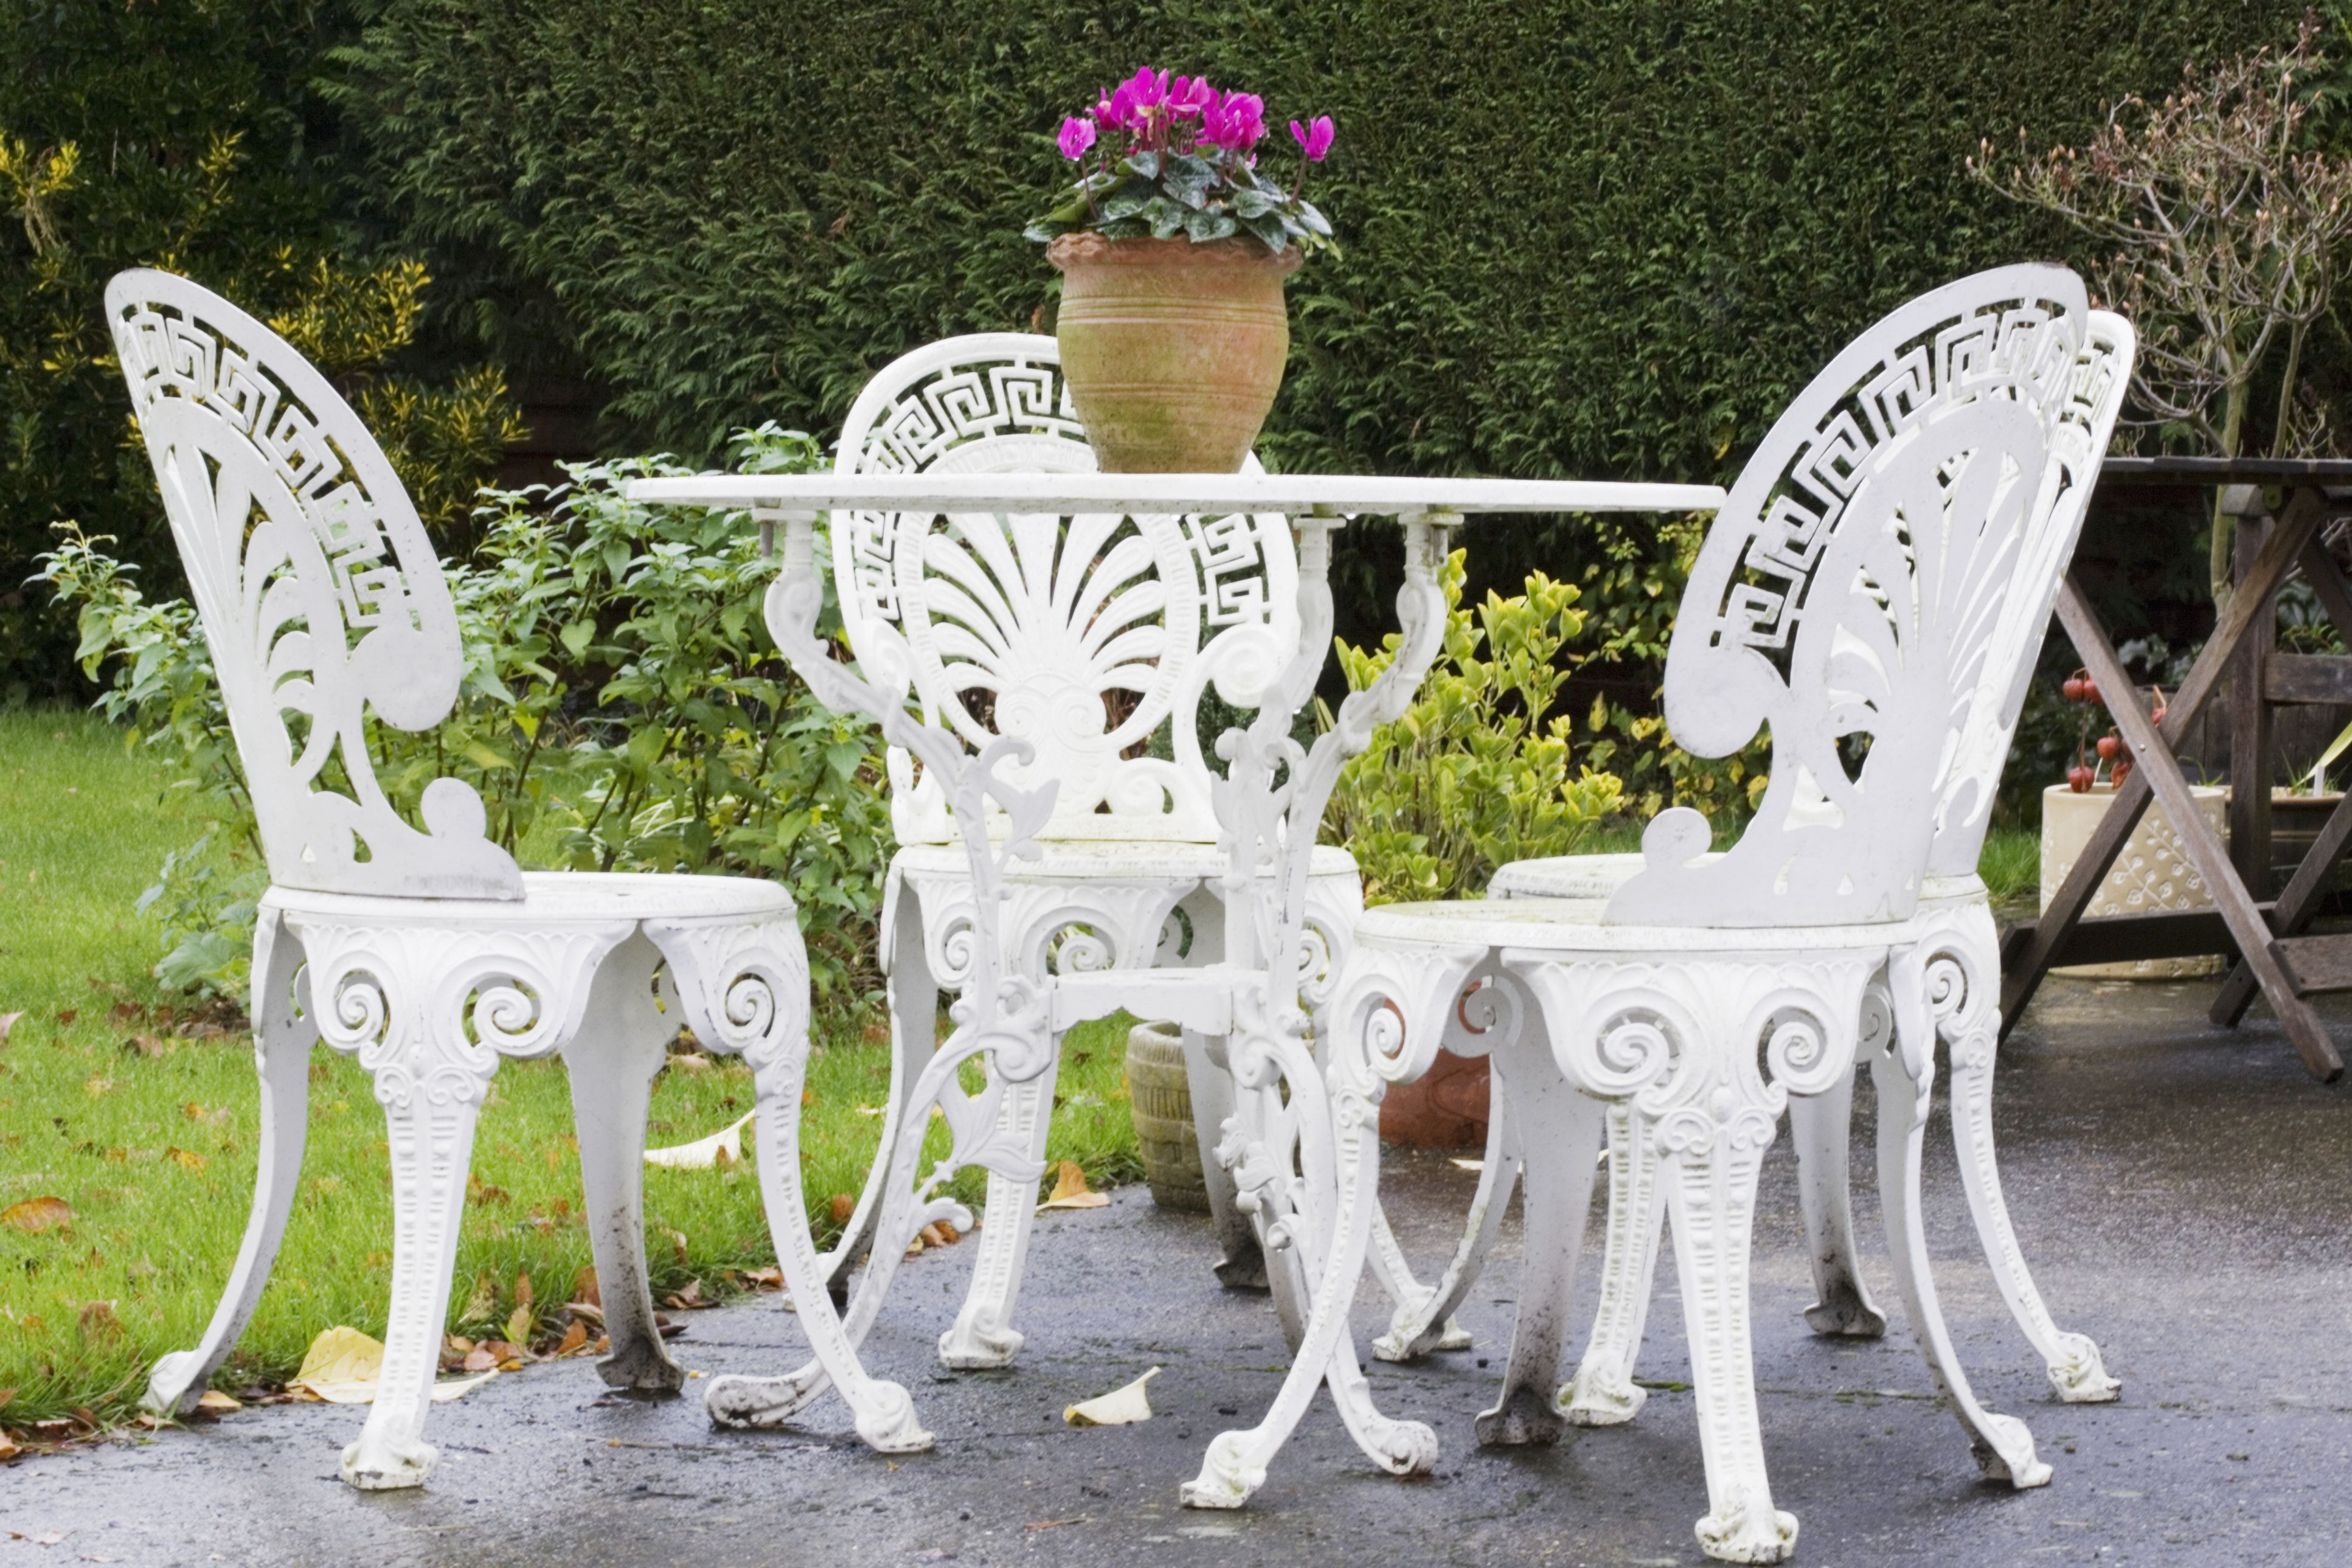 Cast Iron Garden Furniture History and Overview